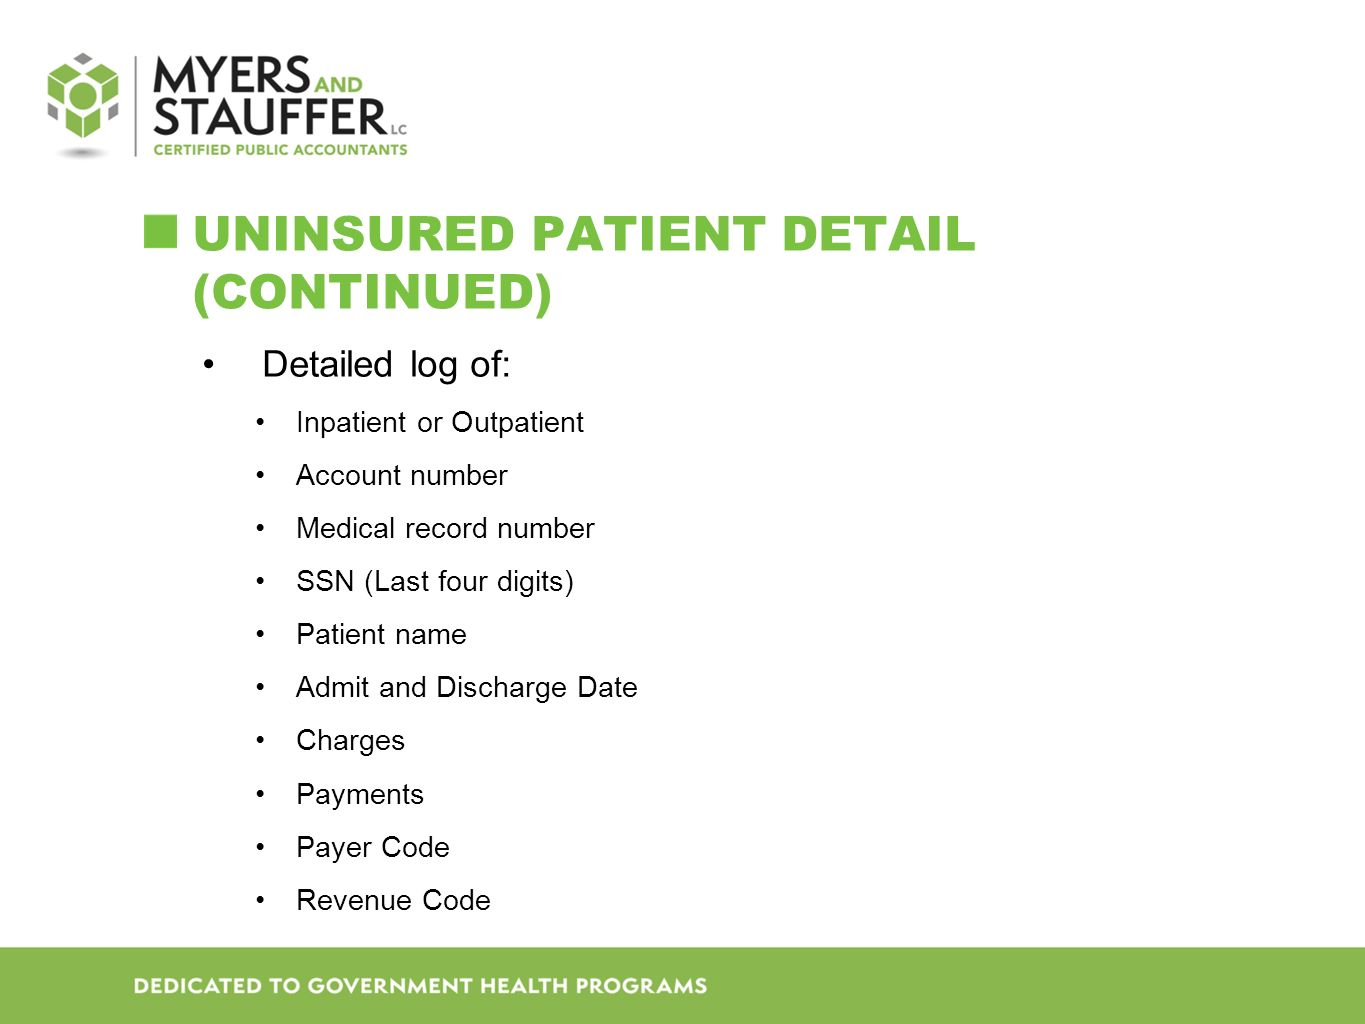 UNINSURED PATIENT DETAIL (CONTINUED) Detailed log of: Inpatient or Outpatient Account number Medical record number SSN (Last four digits) Patient name Admit and Discharge Date Charges Payments Payer Code Revenue Code